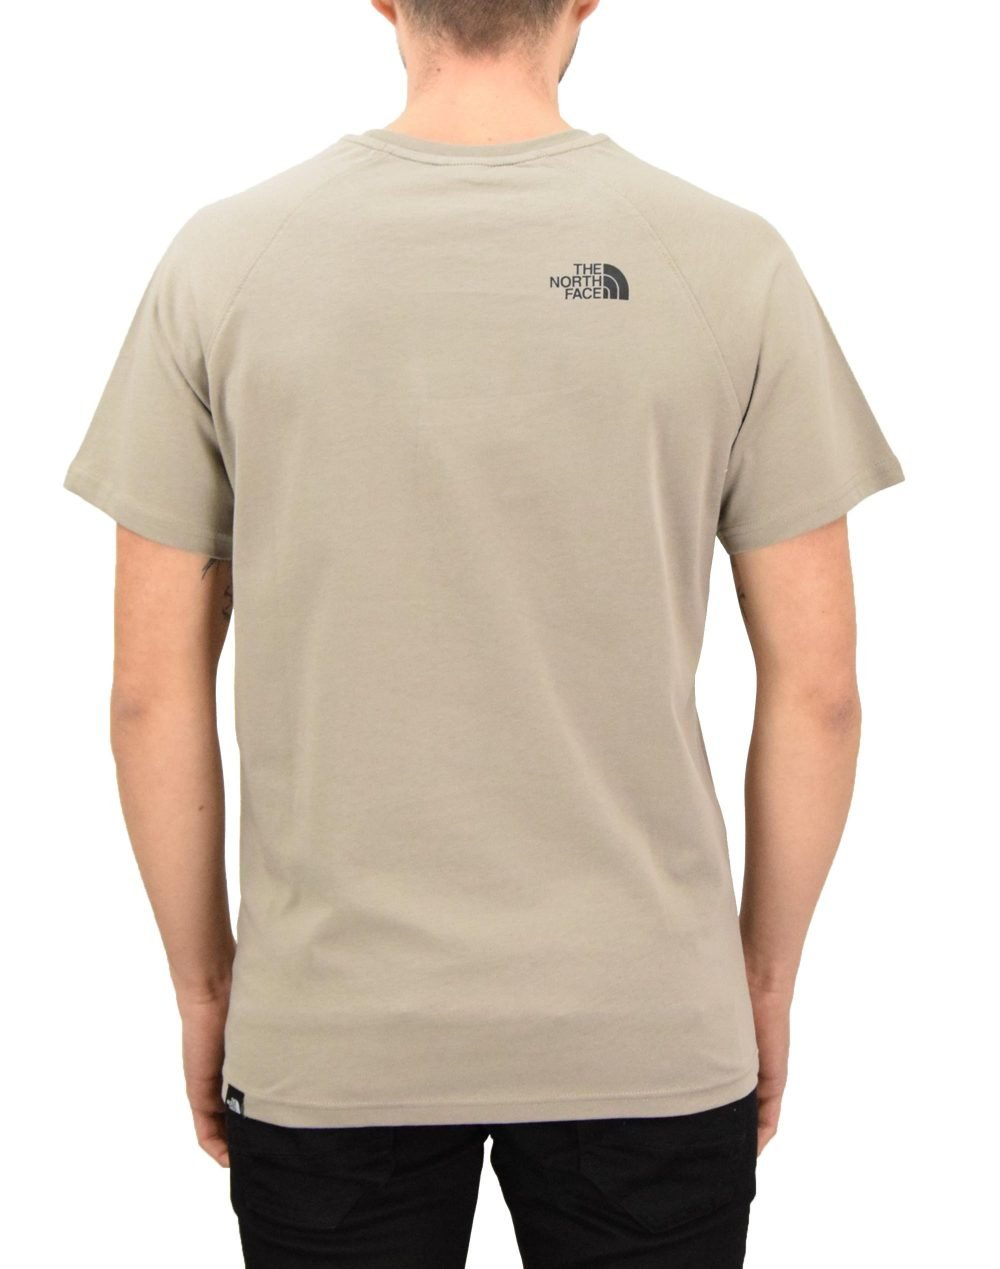 The North Face Raglan Red Box Tee (NF0A3BQOVQ81) Mineral Grey